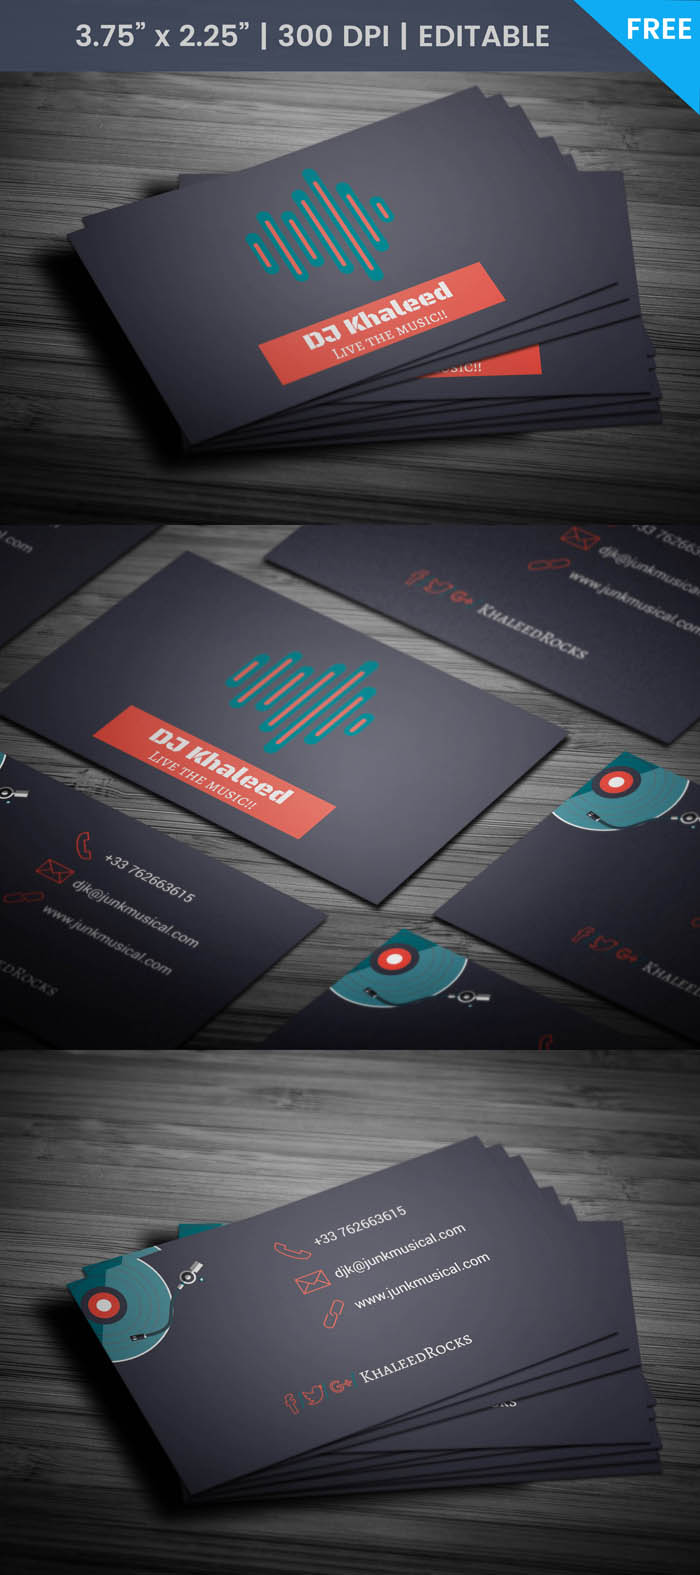 Free Djing Business Card Template